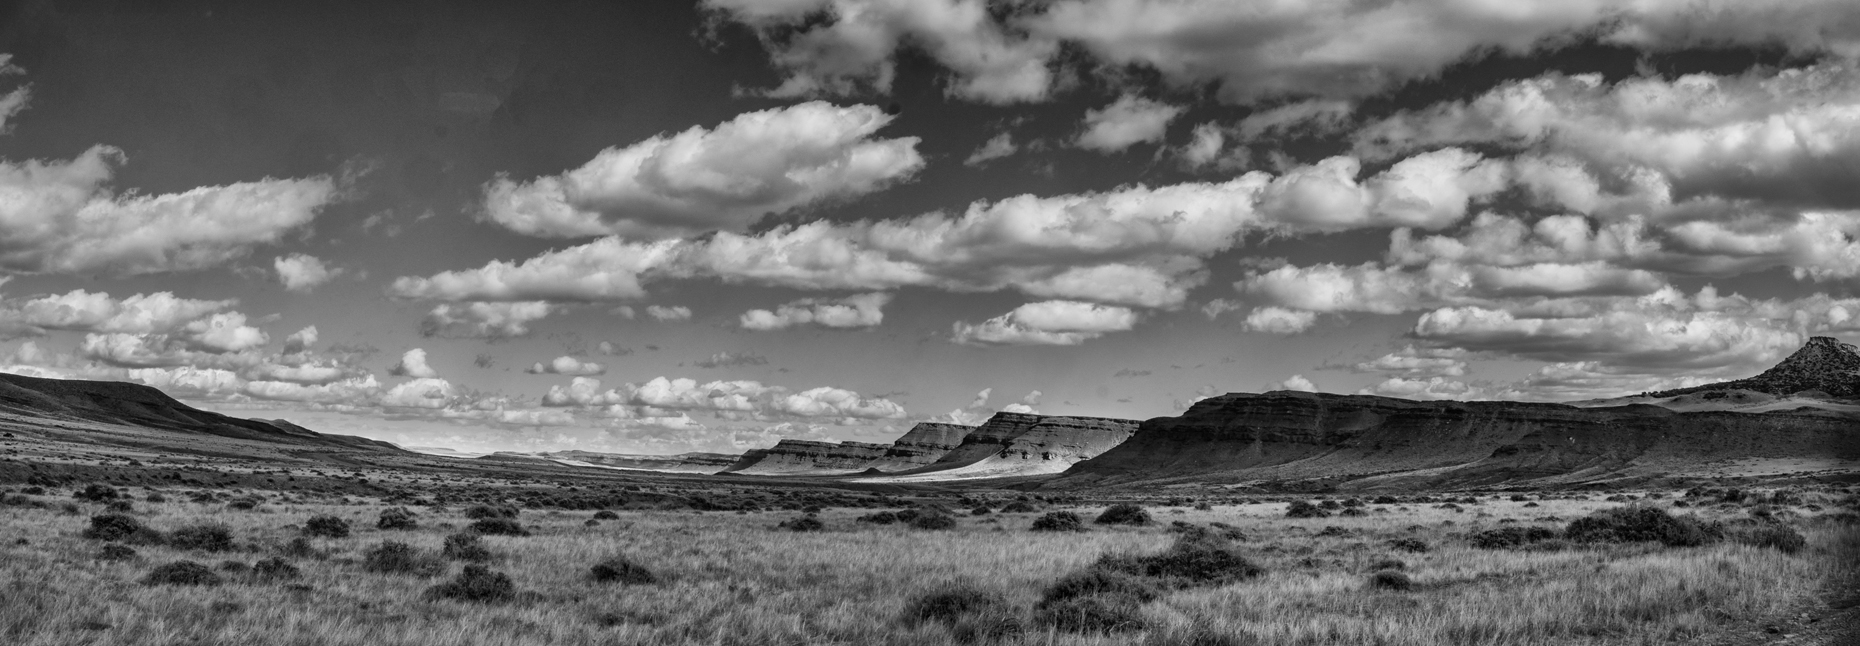 Landscape, Willow Creek Ranch, Wyoming